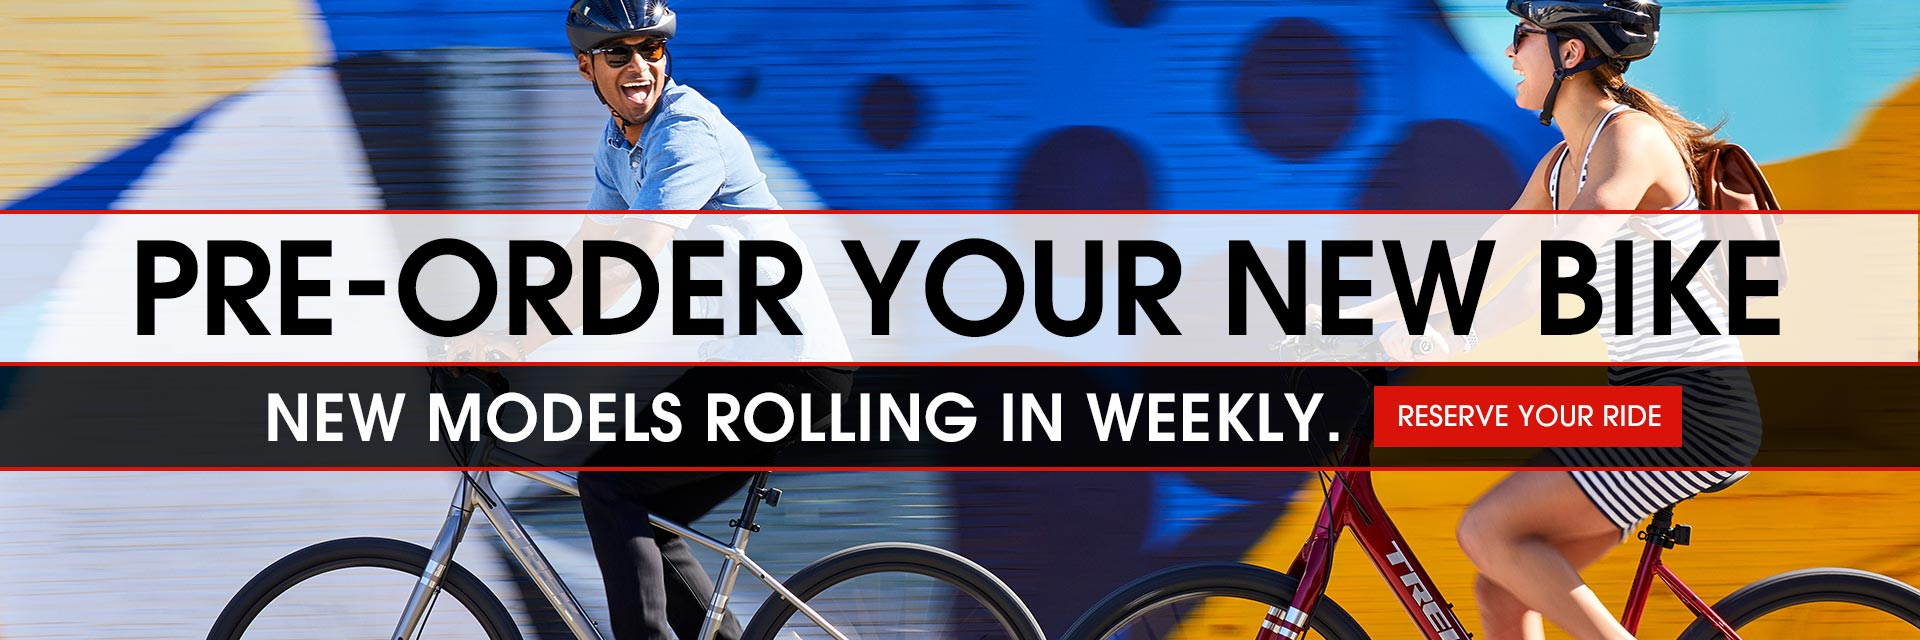 Click here to pre-order your new bike